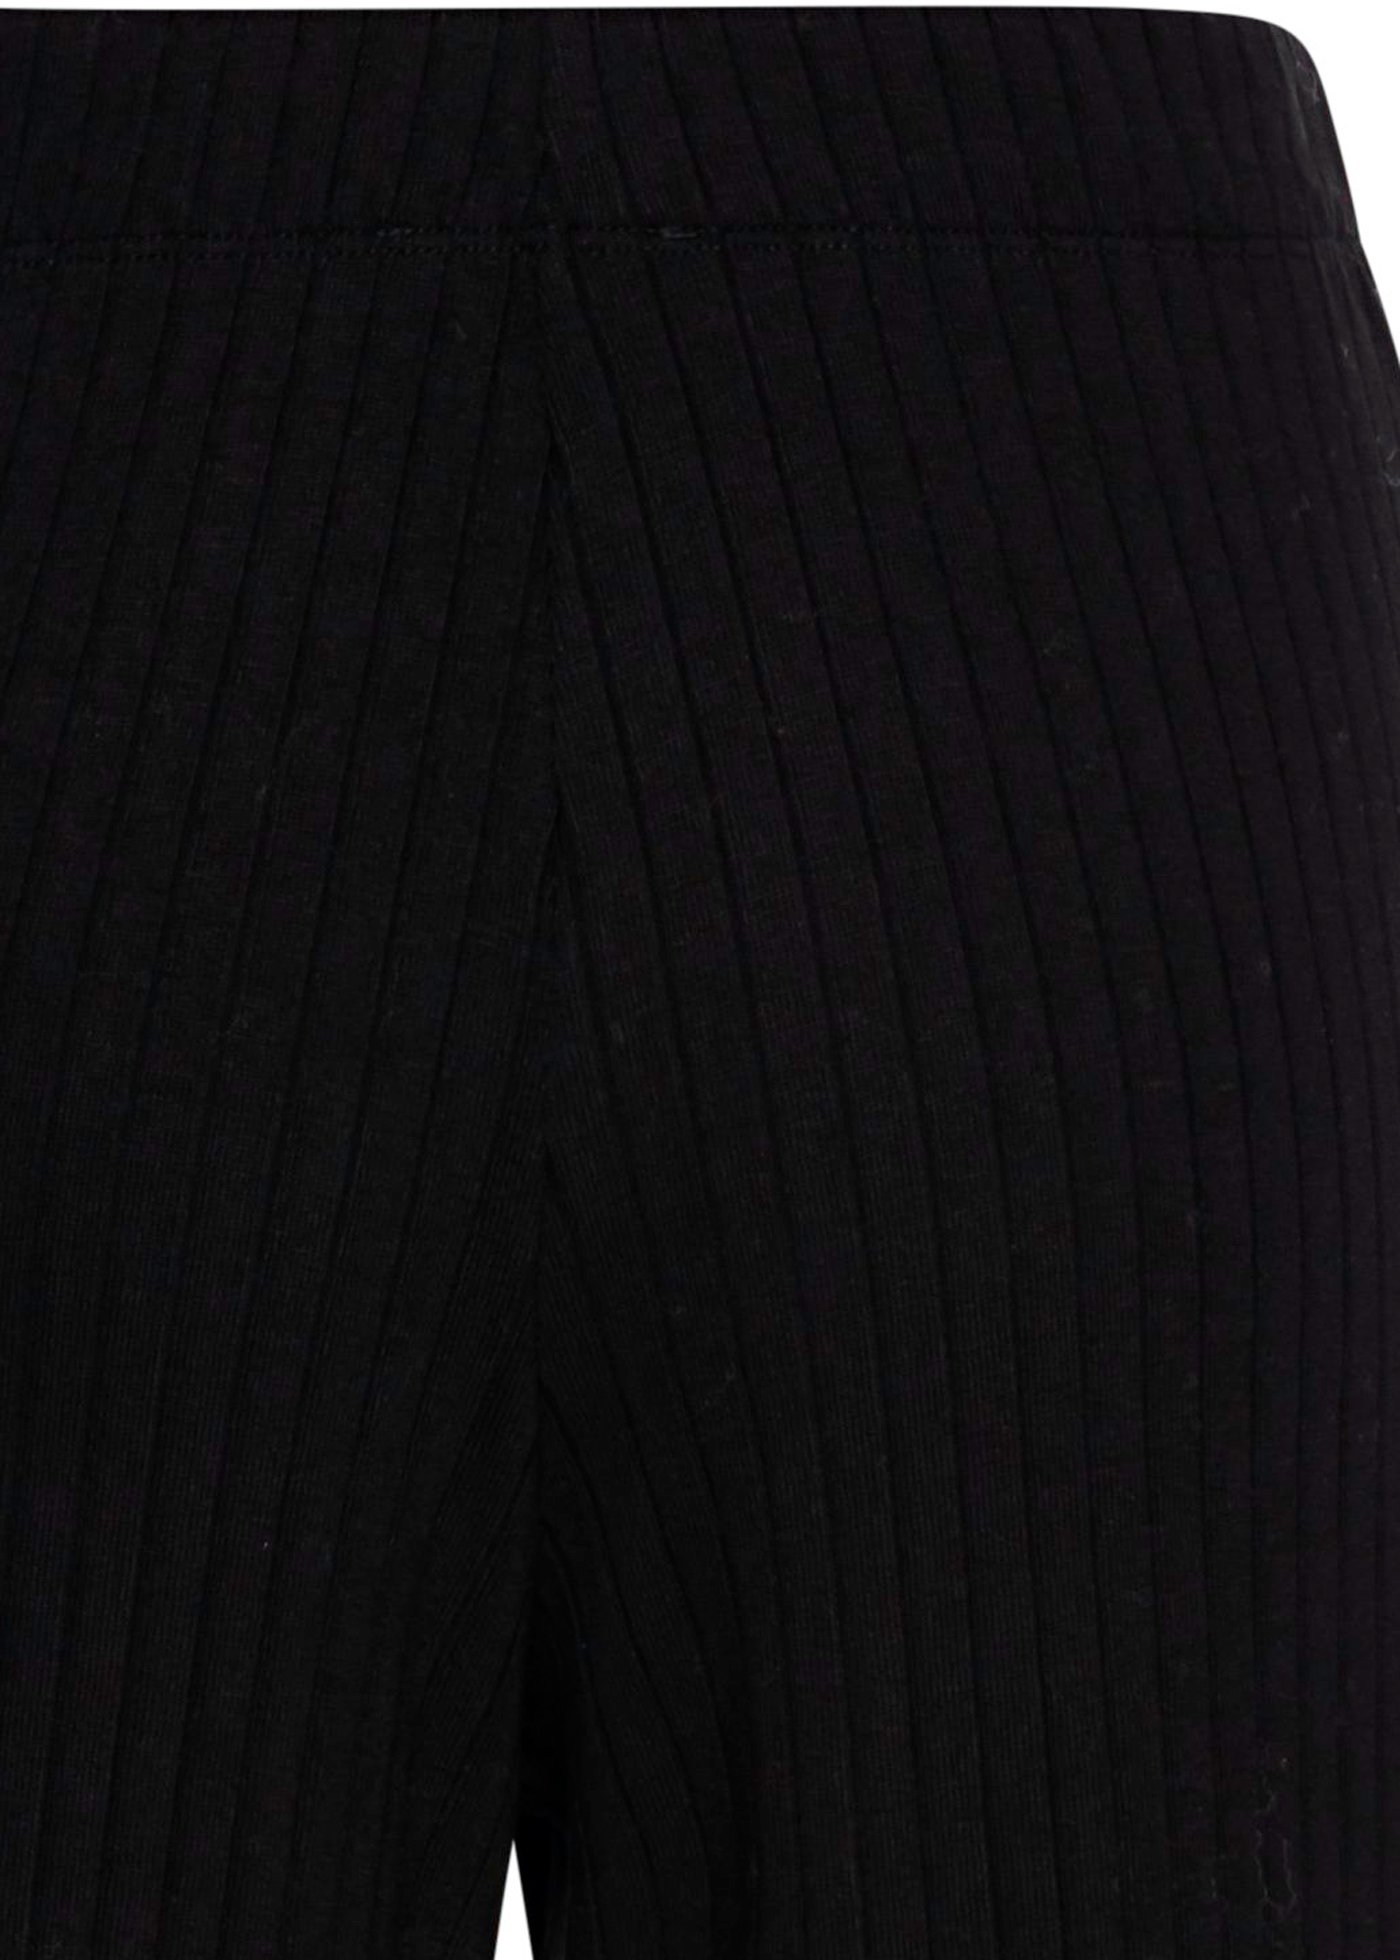 RIBBED CROPPED PANT / RIBBED CROPPED PANT image number 3